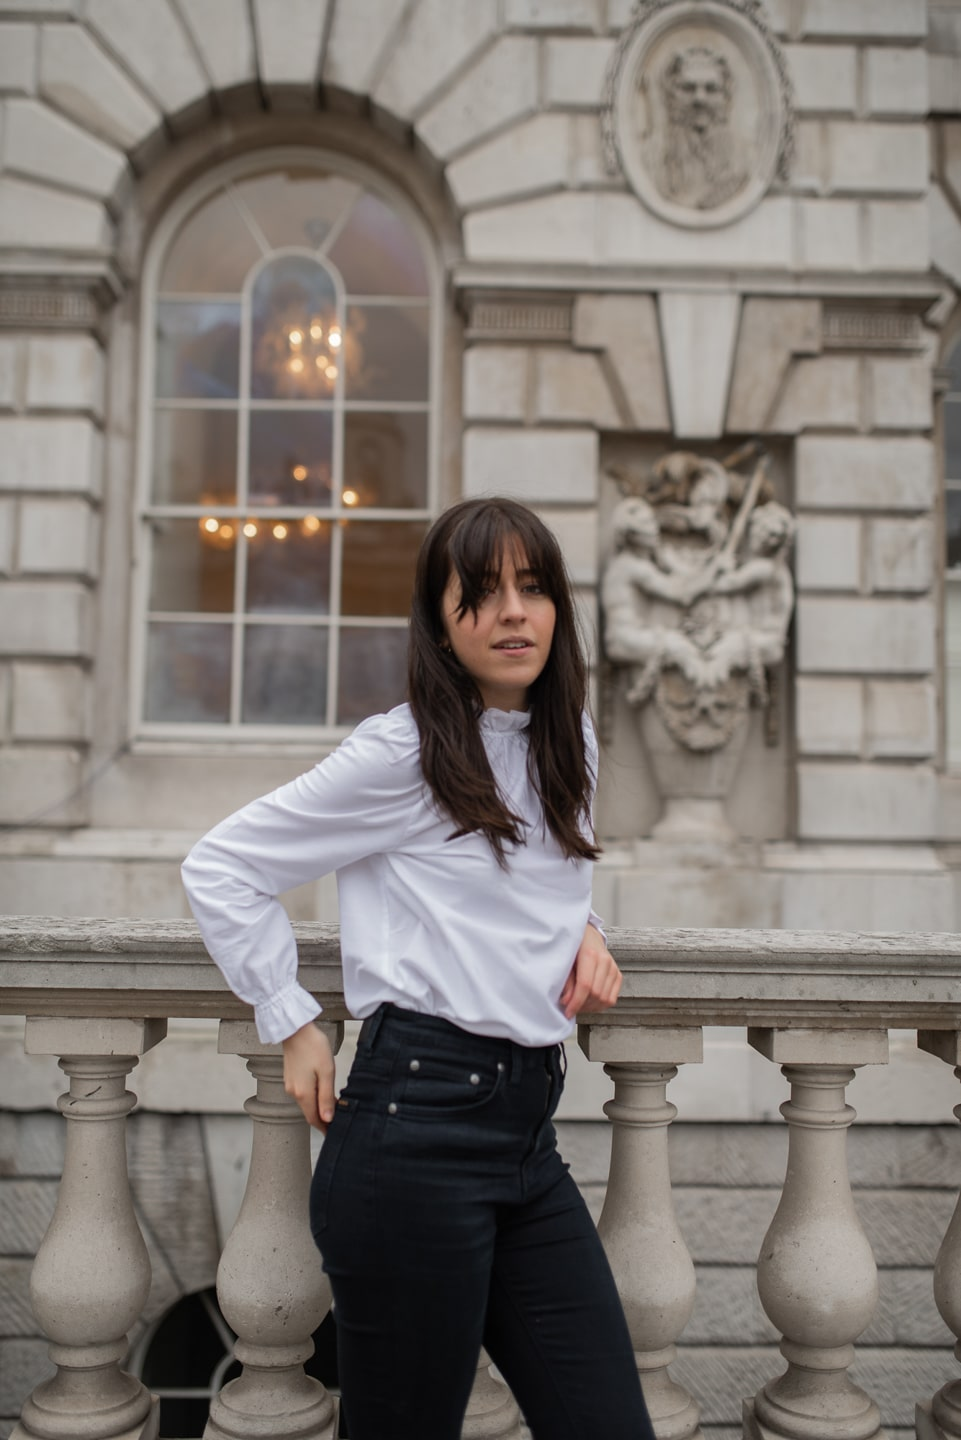 Besma wears Sezane organic cotton blouse and dark blue jeans